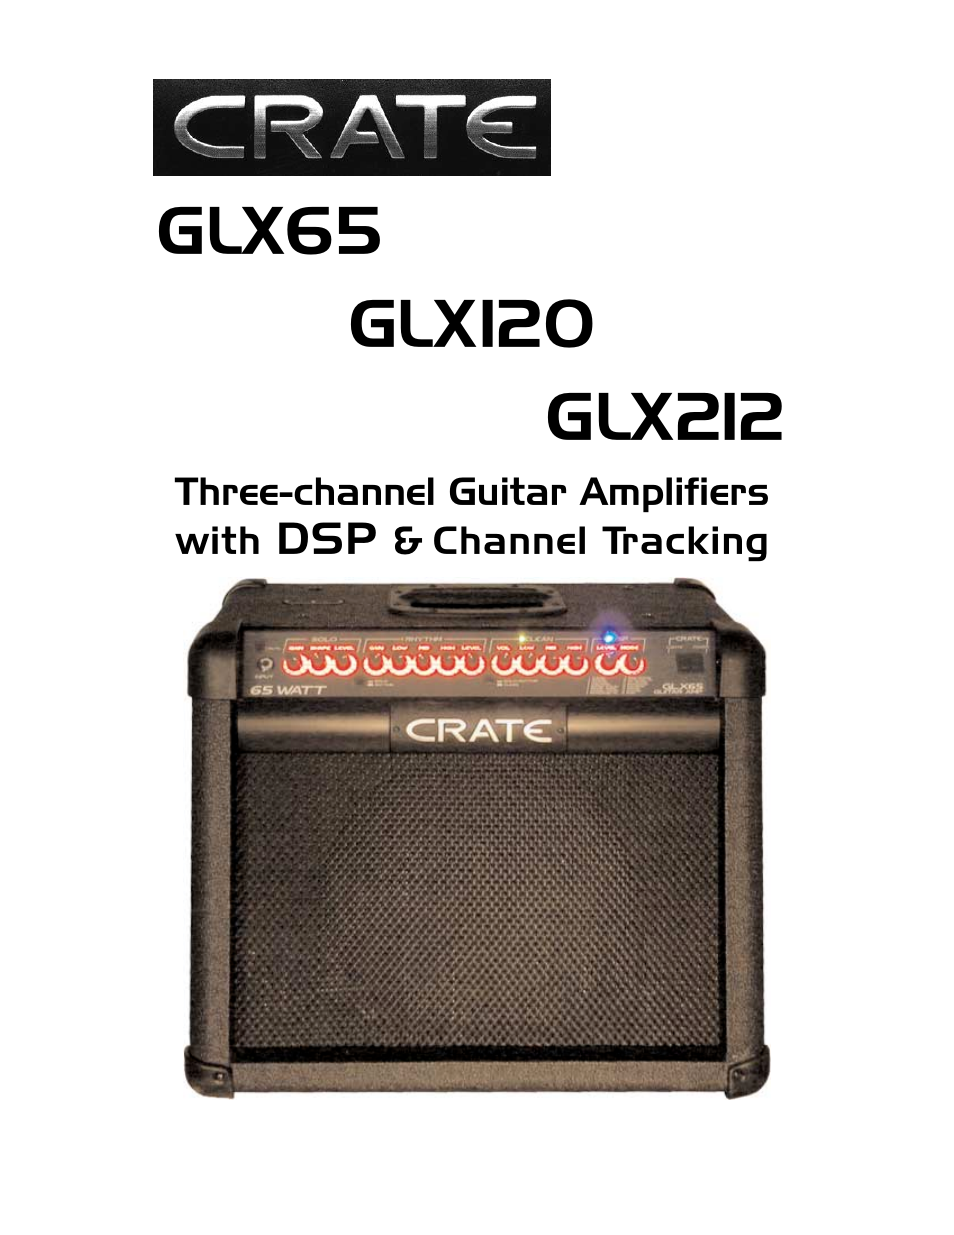 crate amplifiers glx212 user manual 8 pages also for glx65 glx120 rh manualsdir com crate limo amp manual crate gt212 amp manual